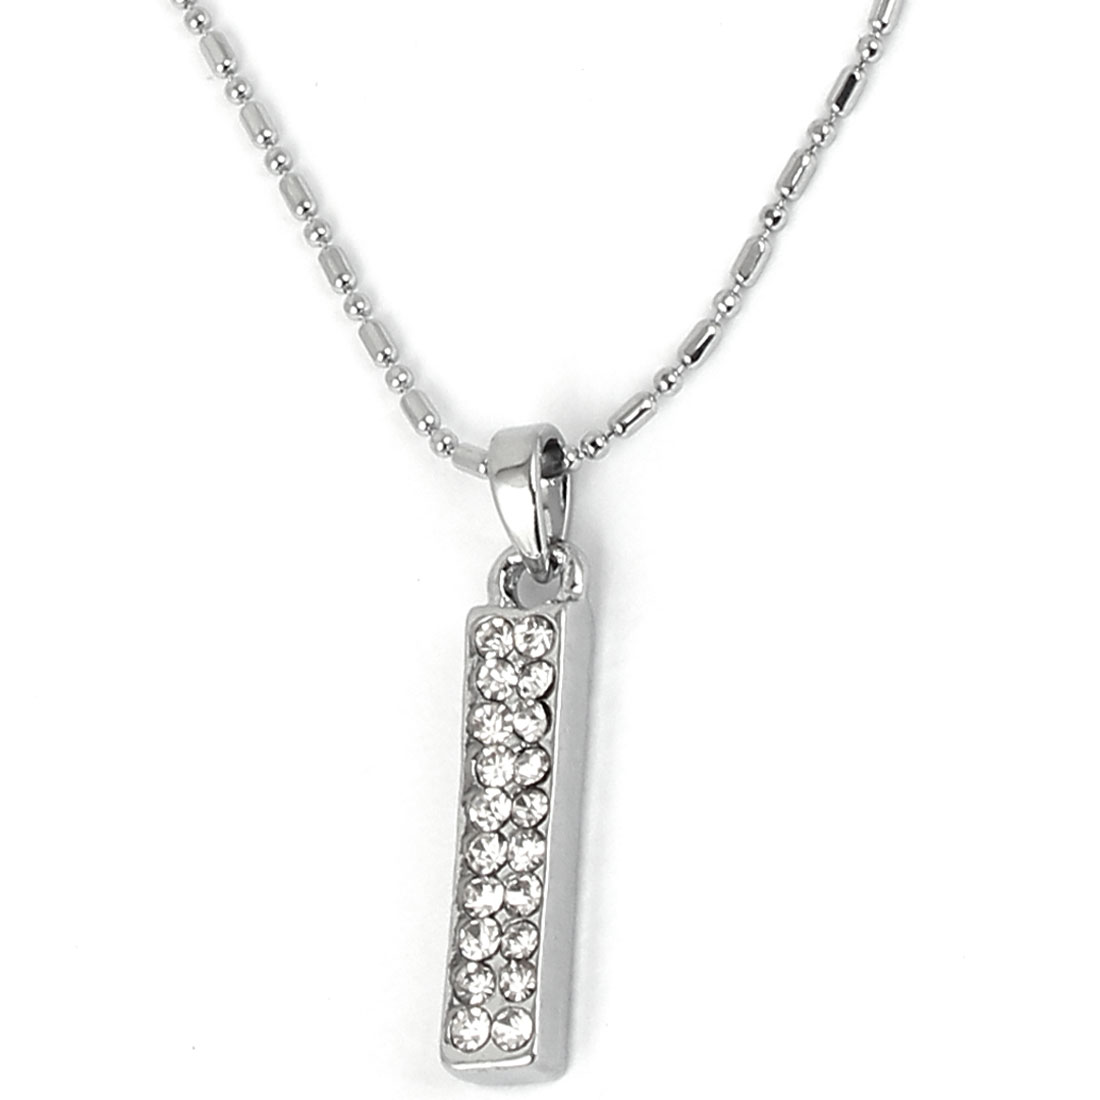 Lady Metal Cube Bar Pendant Strip Link Chain Necklace Silver Tone